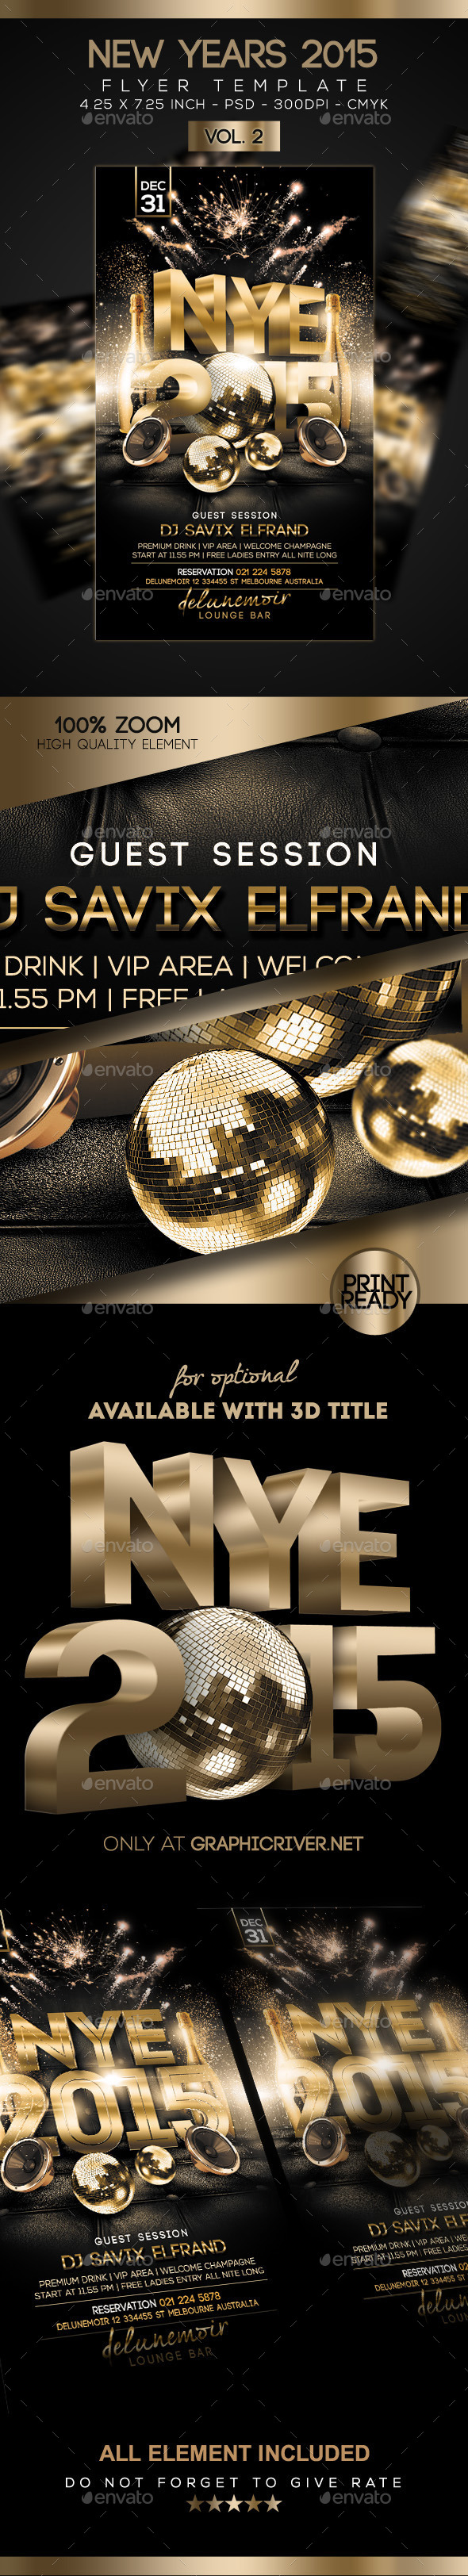 GraphicRiver New Years Flyer Vol 2 9720991